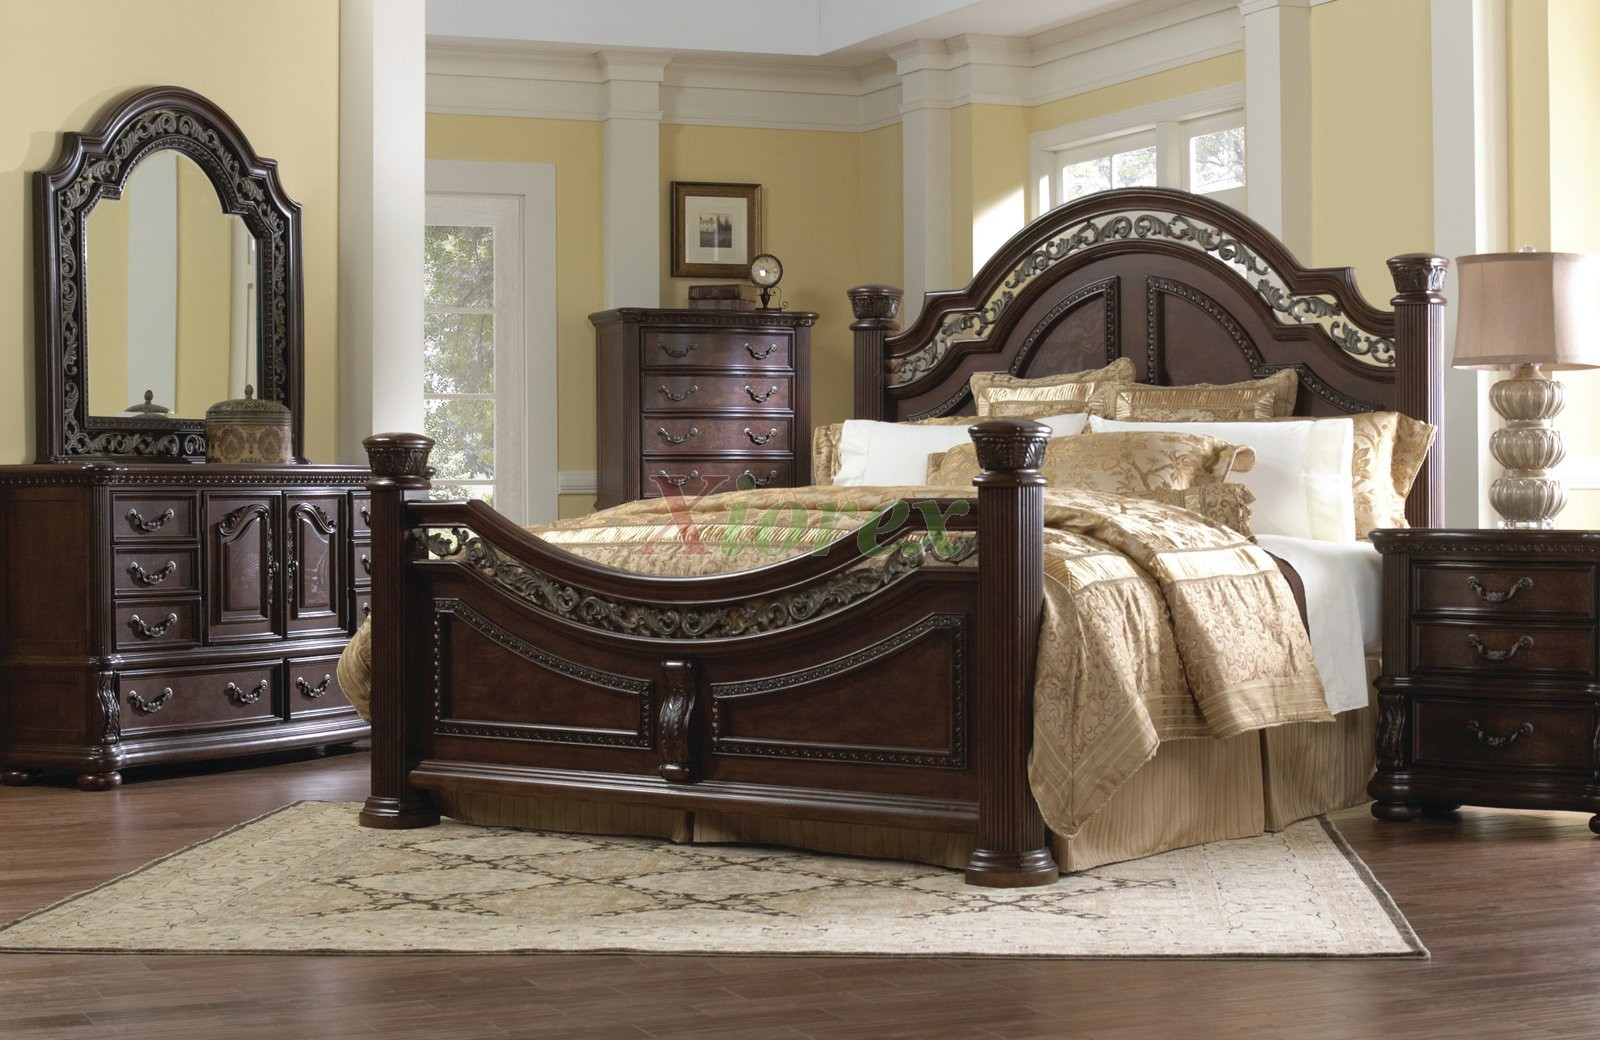 Bedroom Furniture Traditional stunning traditional bedroom set ideas - rugoingmyway